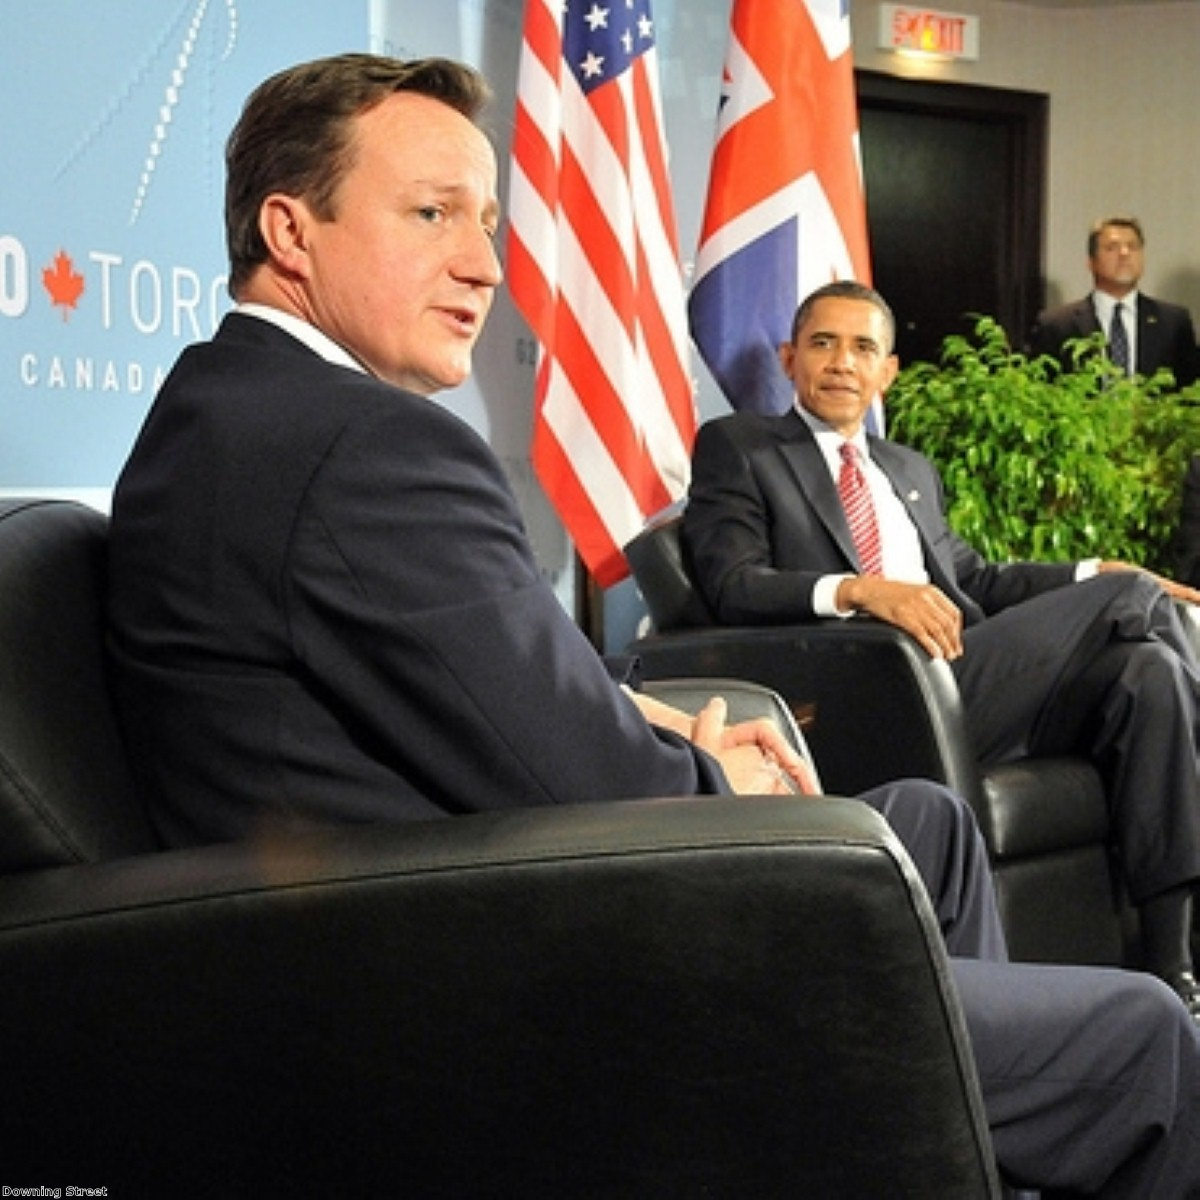 Putting it all at risk? US might not care so much if UK left EU